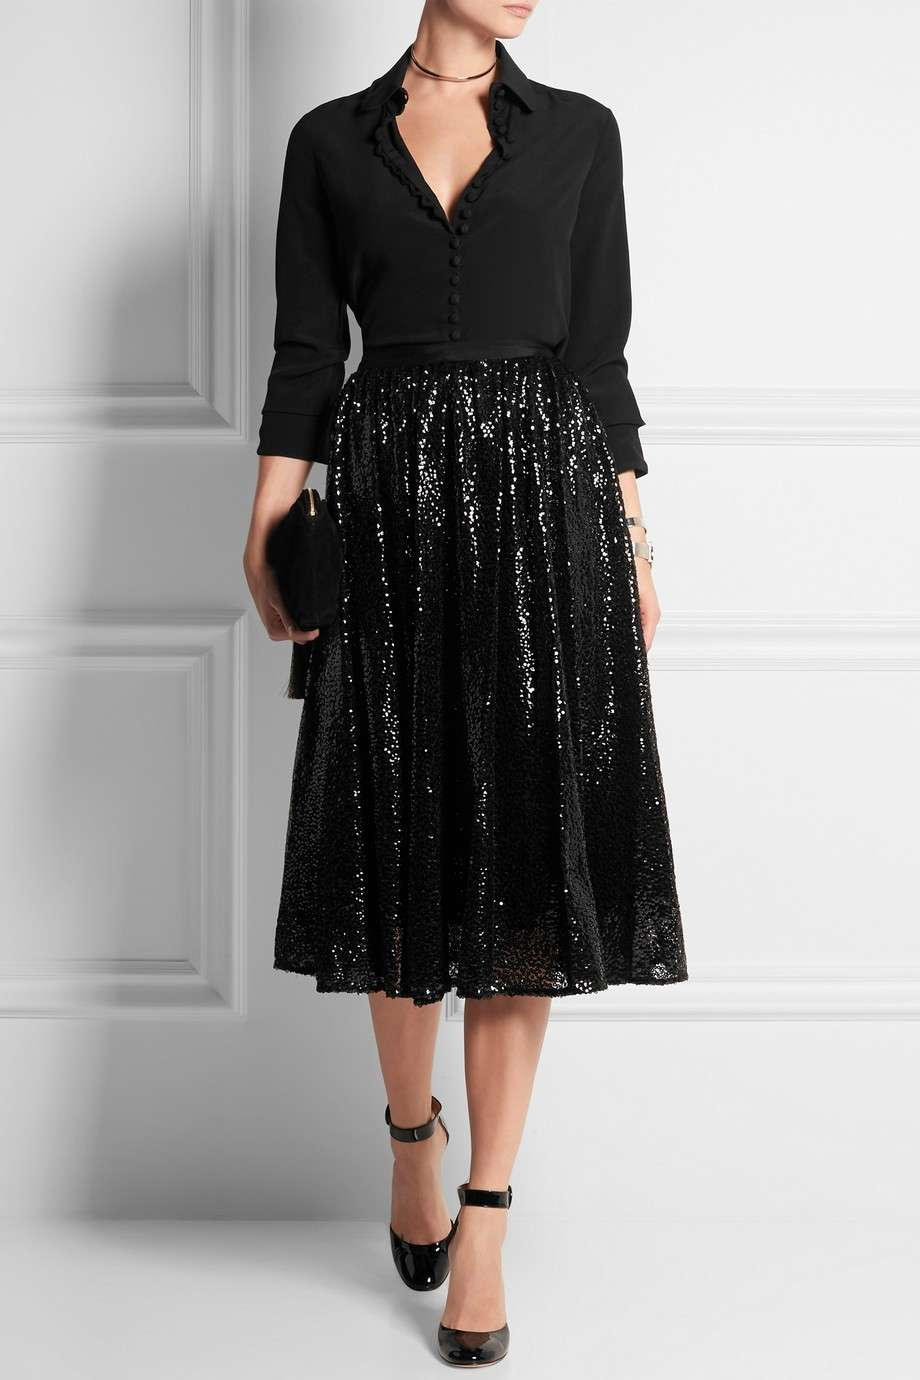 Gonna in tulle con paillettes Michal Kors